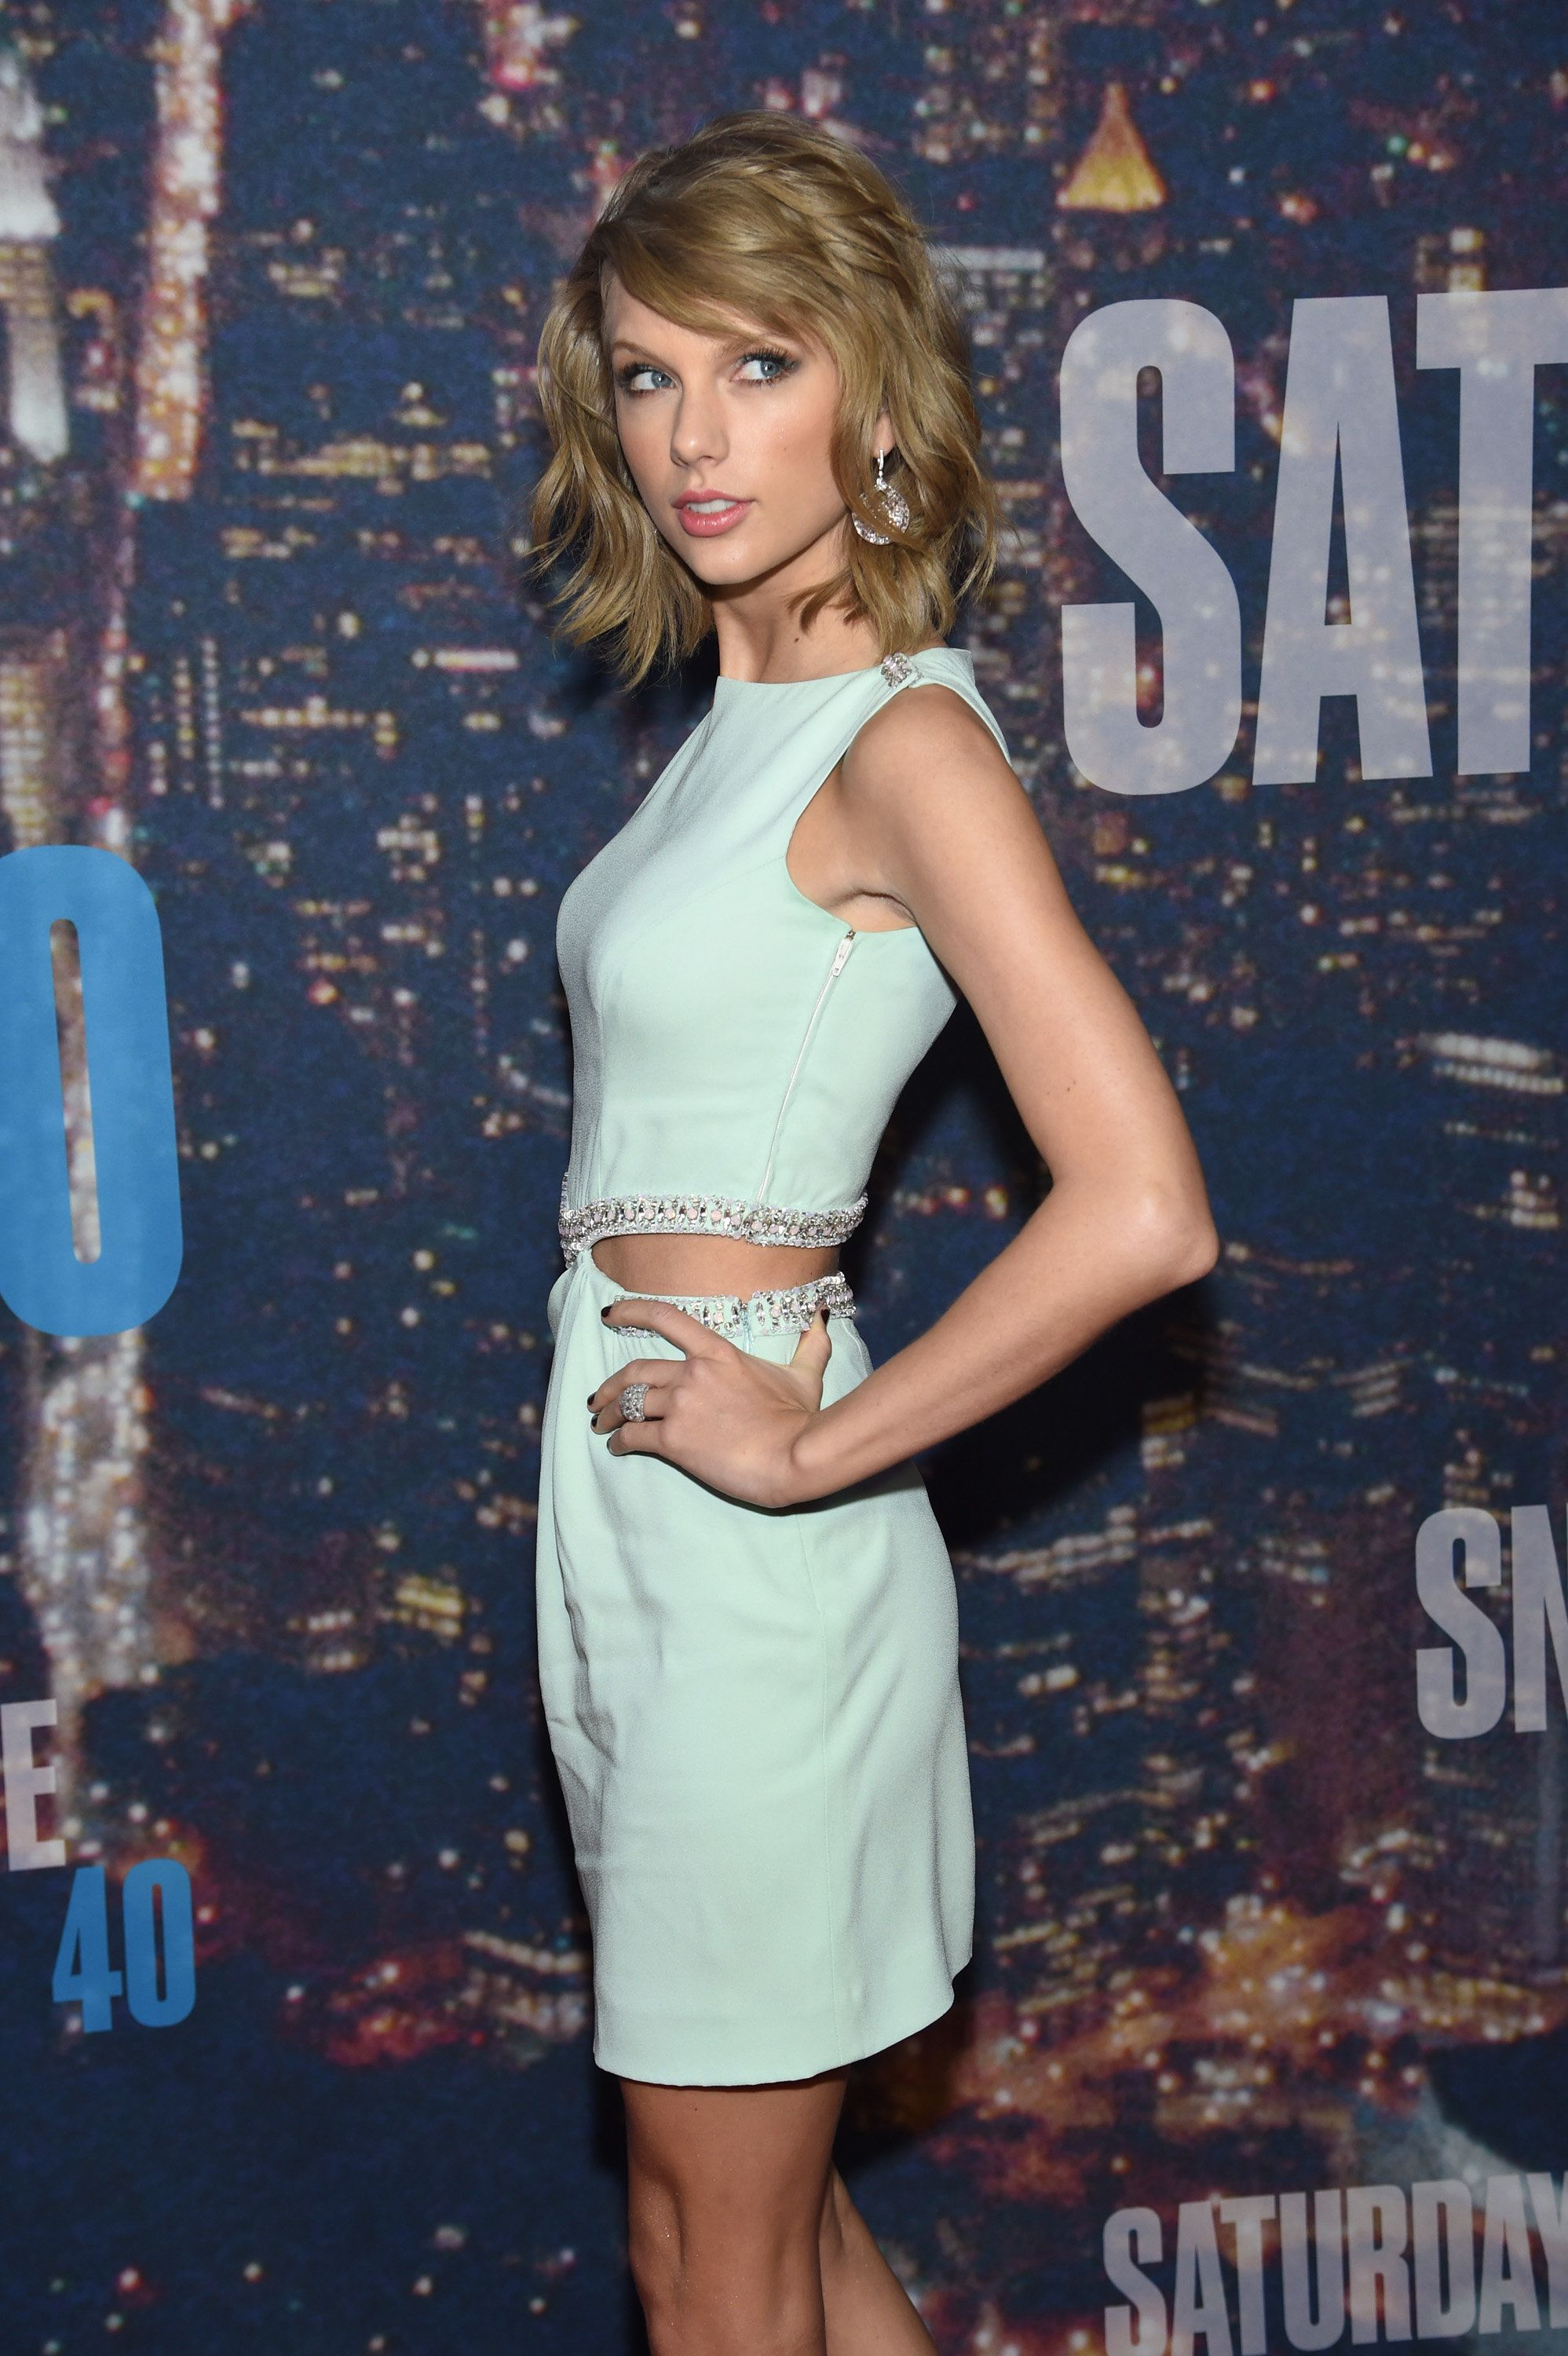 Taylor Swift attends the SNL 40th Anniversary Special in 2015.